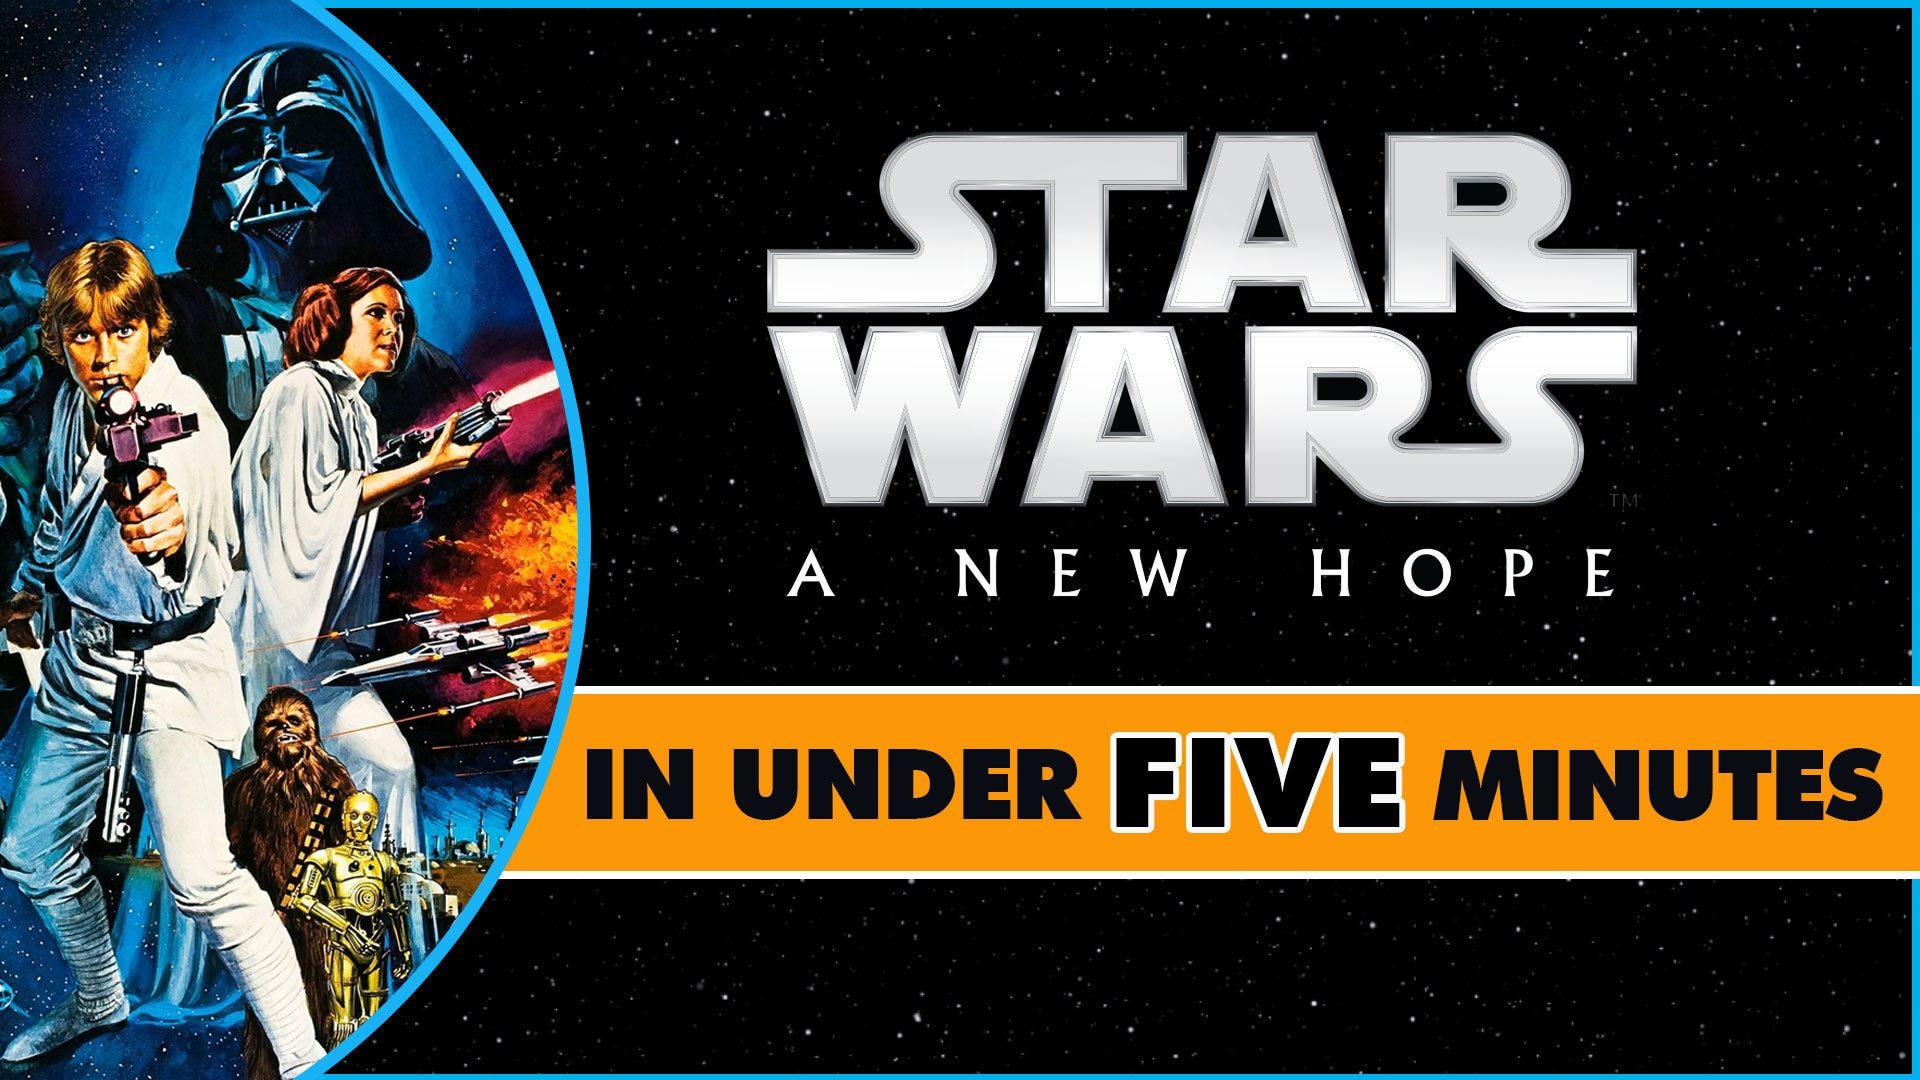 Star Wars: A New Hope in Under Five Minutes